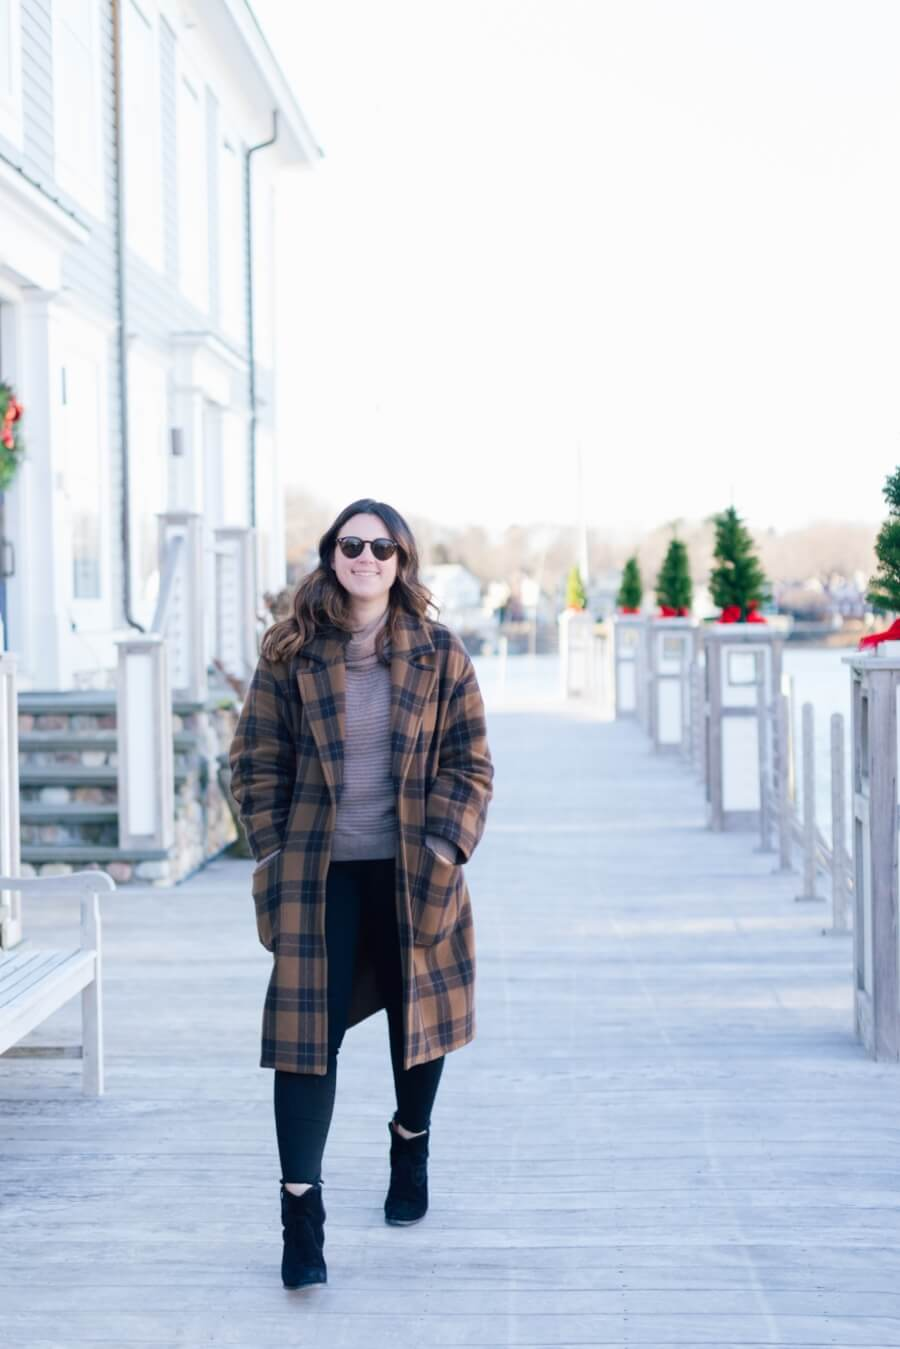 Work(Out)-Life Balance: How Morgan Matkovic Does Wellness in Greenwich, CT